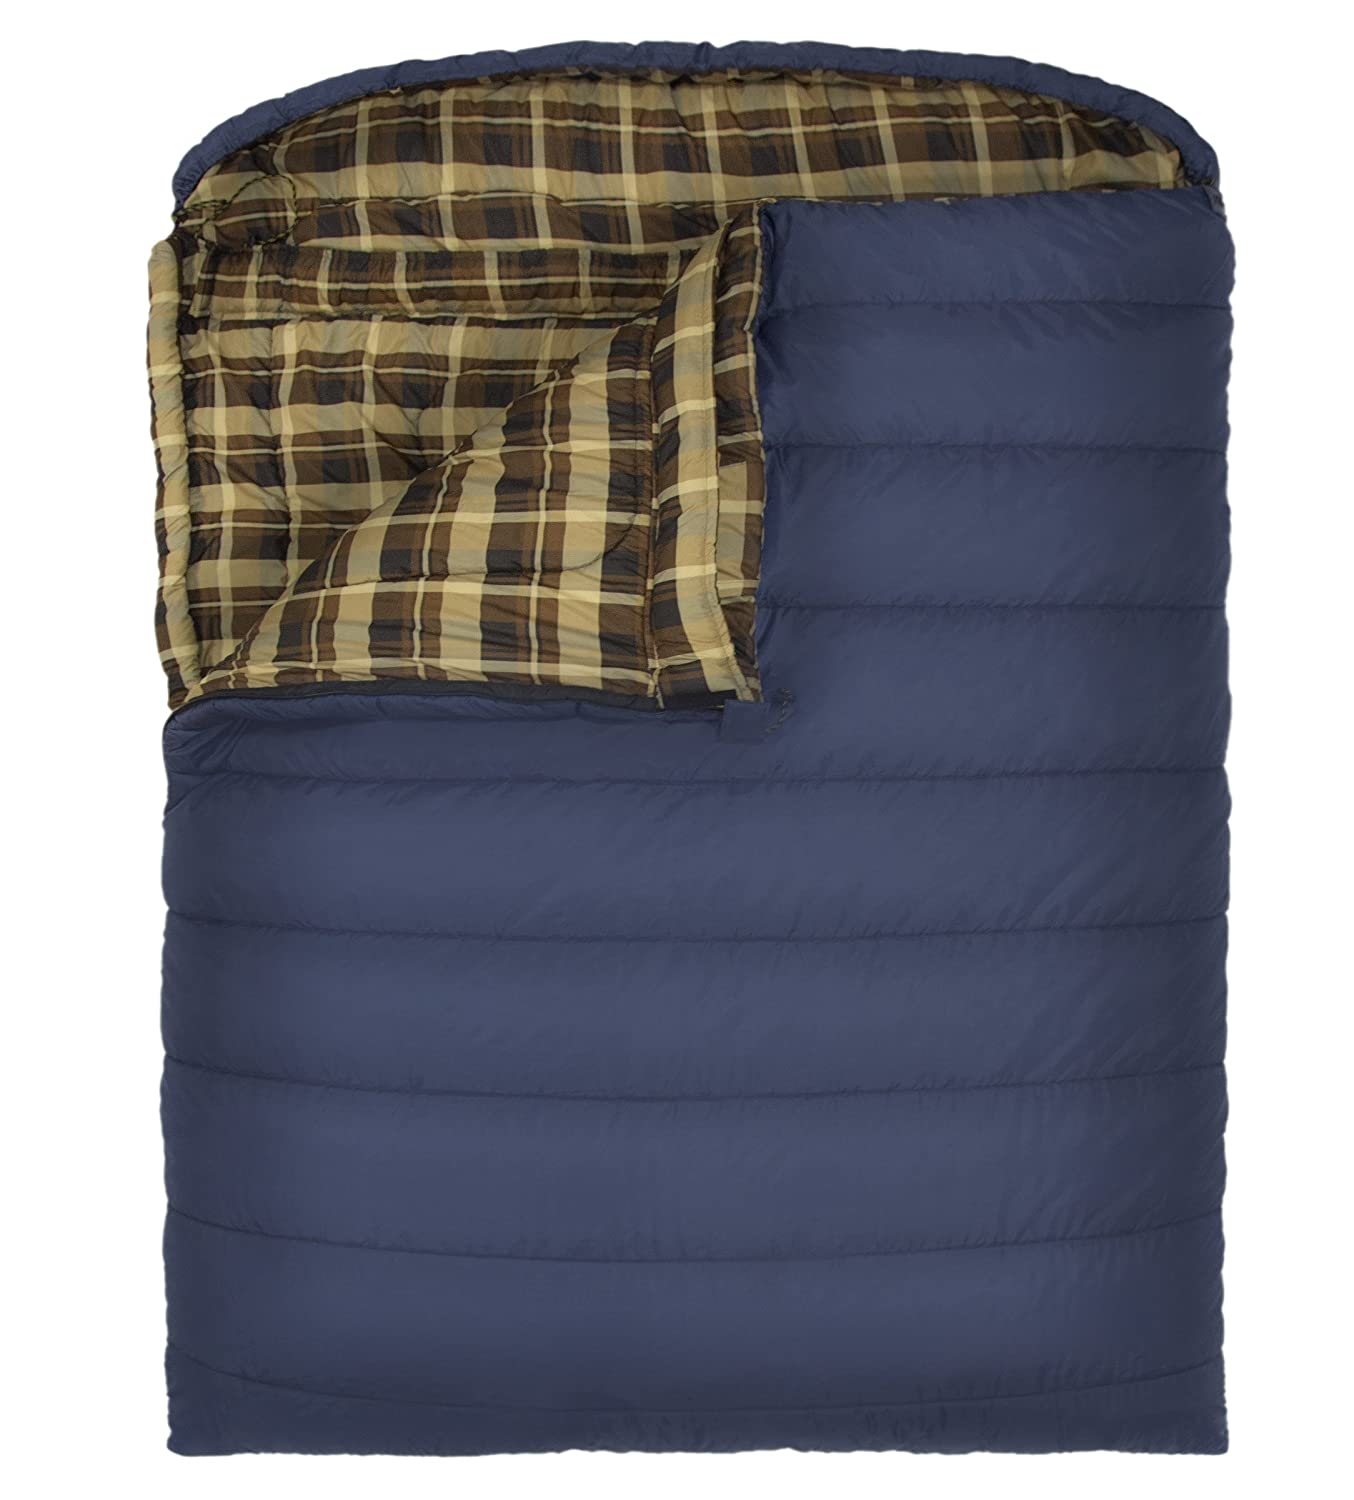 Amazon.com: TETON deportes Mammoth Saco de dormir doble ...